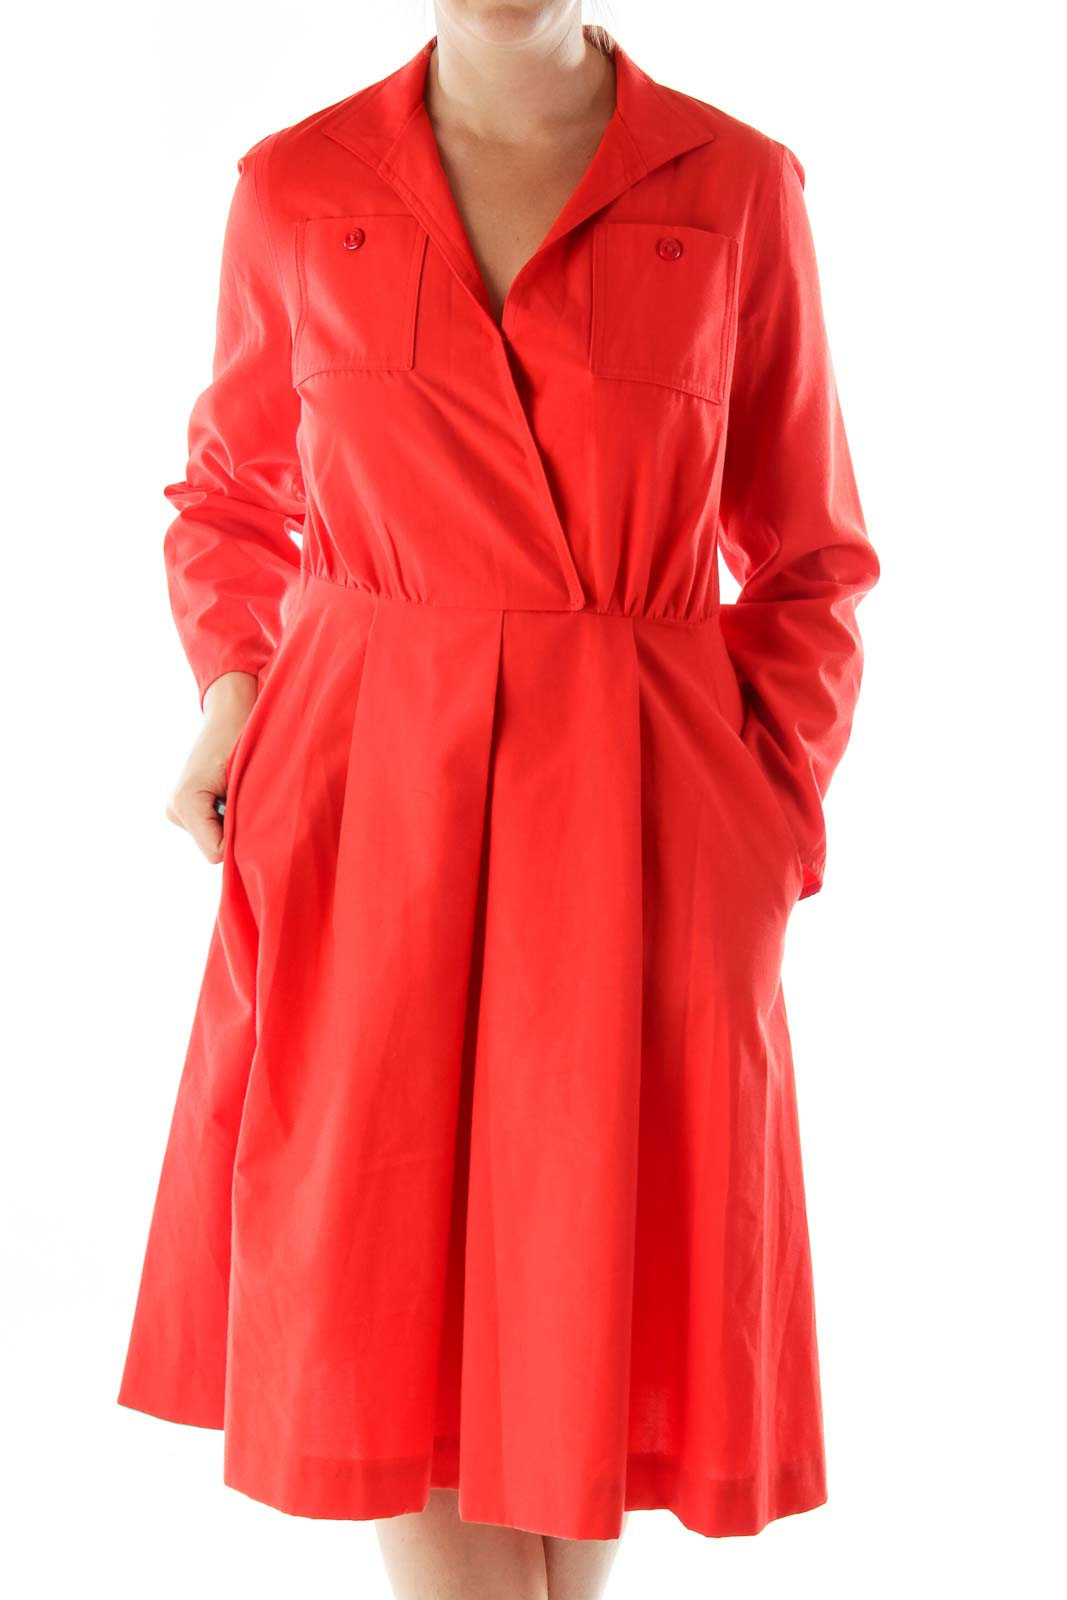 Red Collared Buttoned Pocketed Work Dress